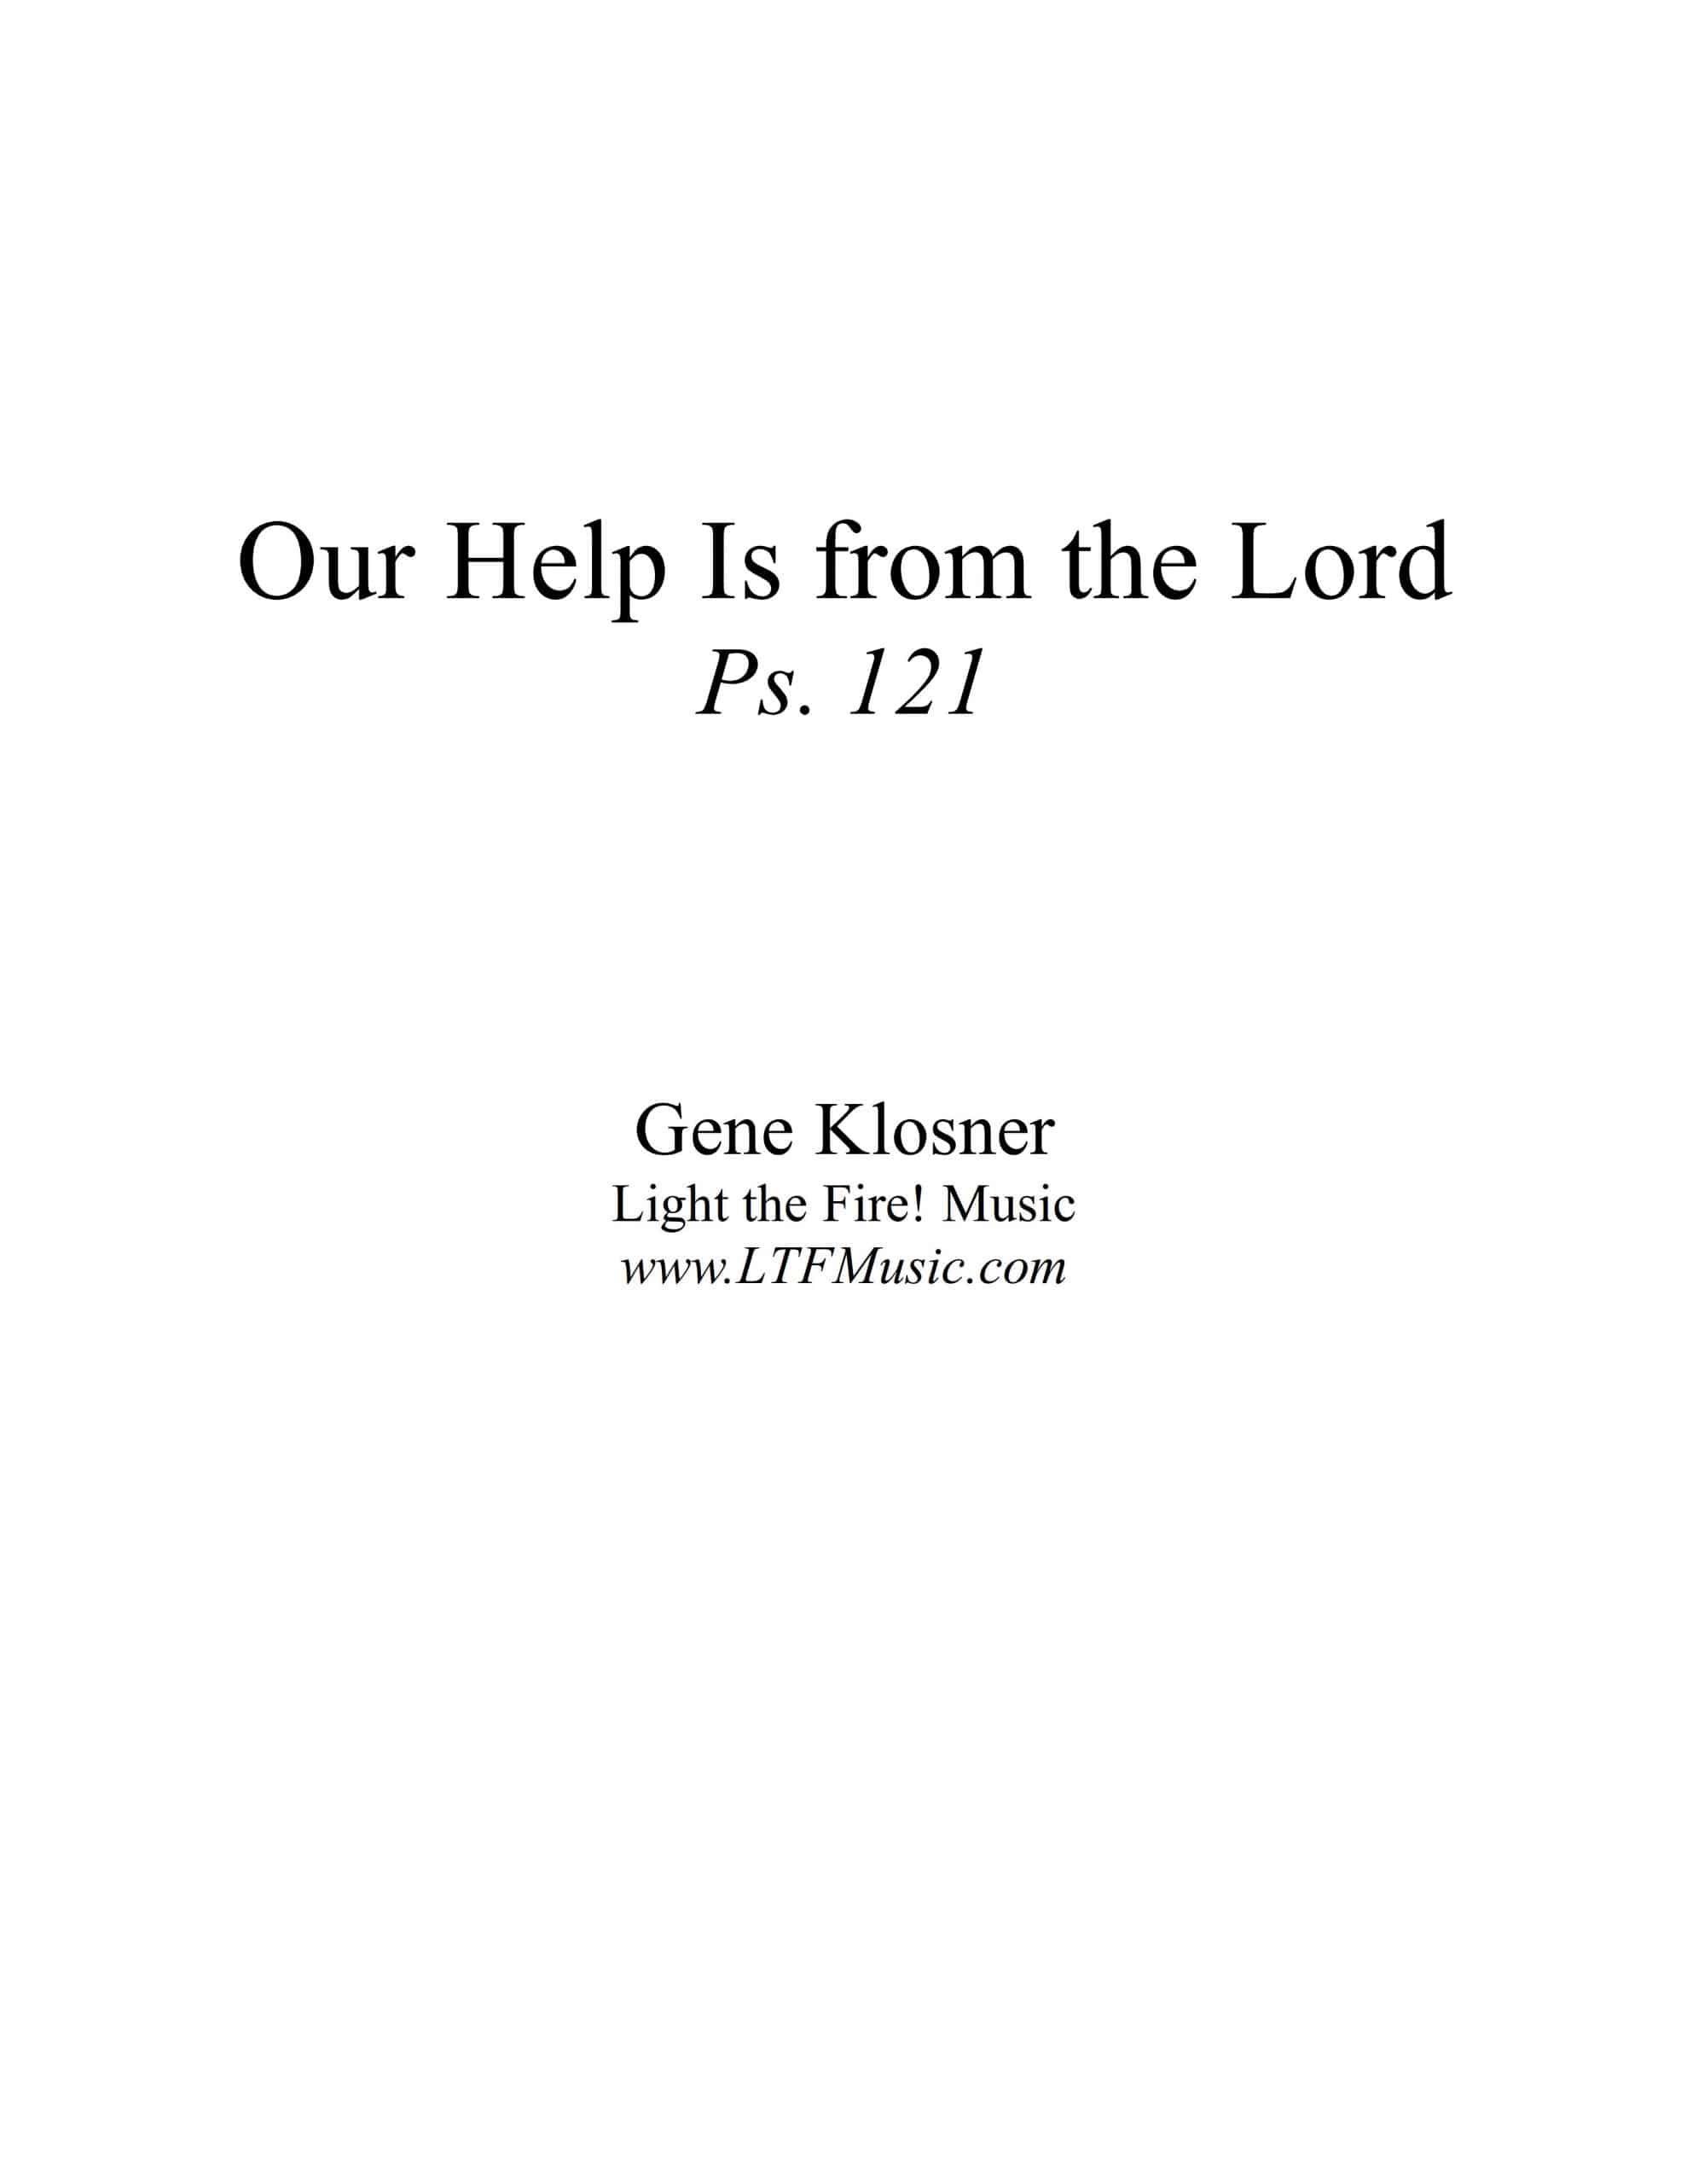 Our Help Is from the Lord LdShtSATB CompletePDF Sample scaled